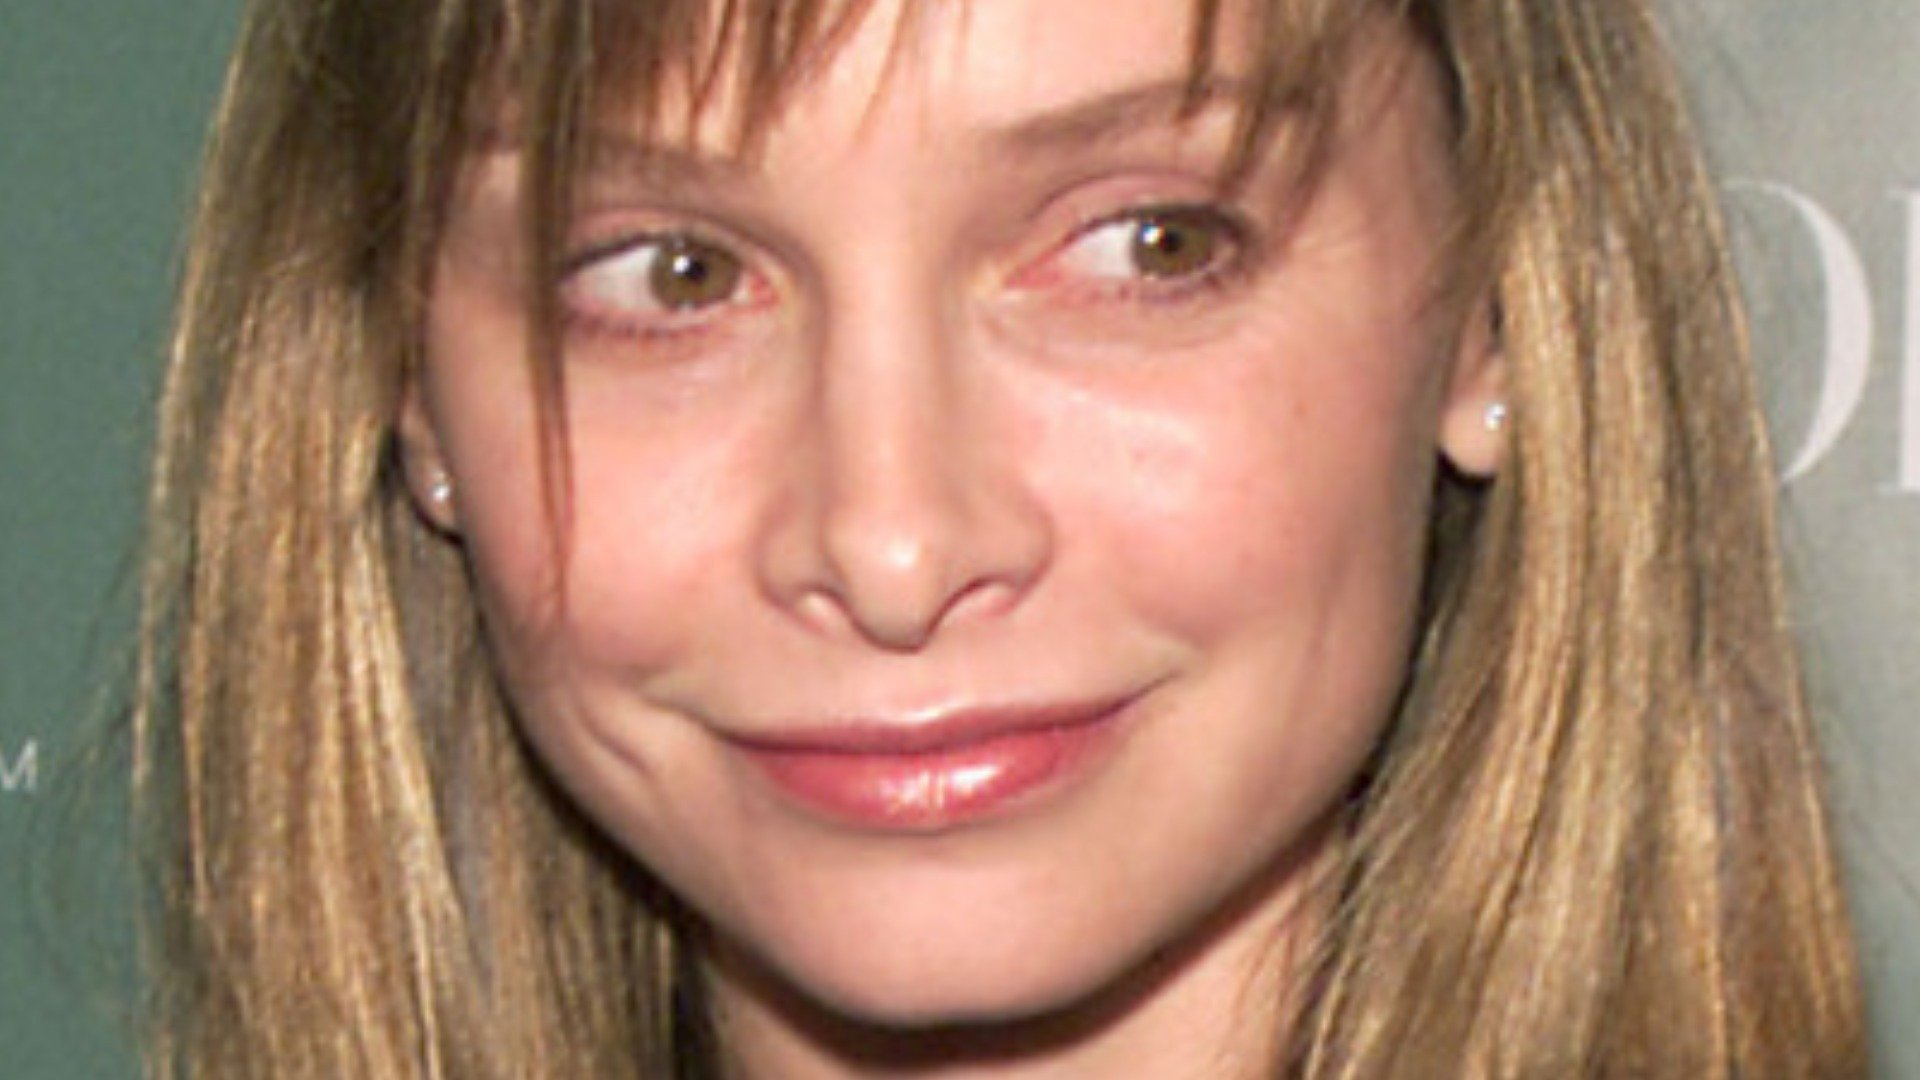 What Really Happened To Calista Flockhart?